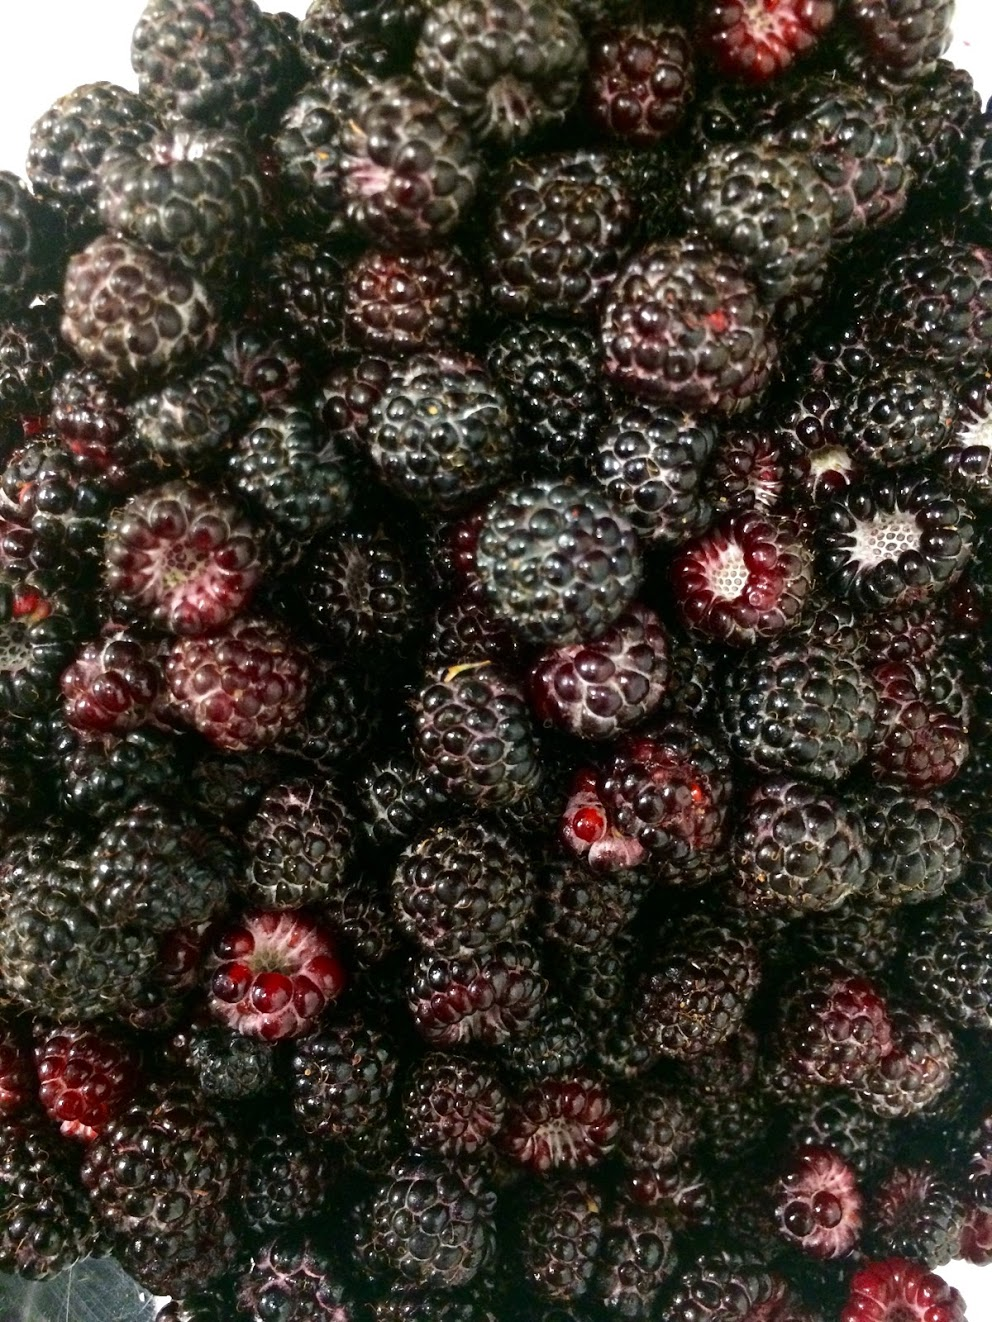 Buck's Rock farm fresh black raspberries